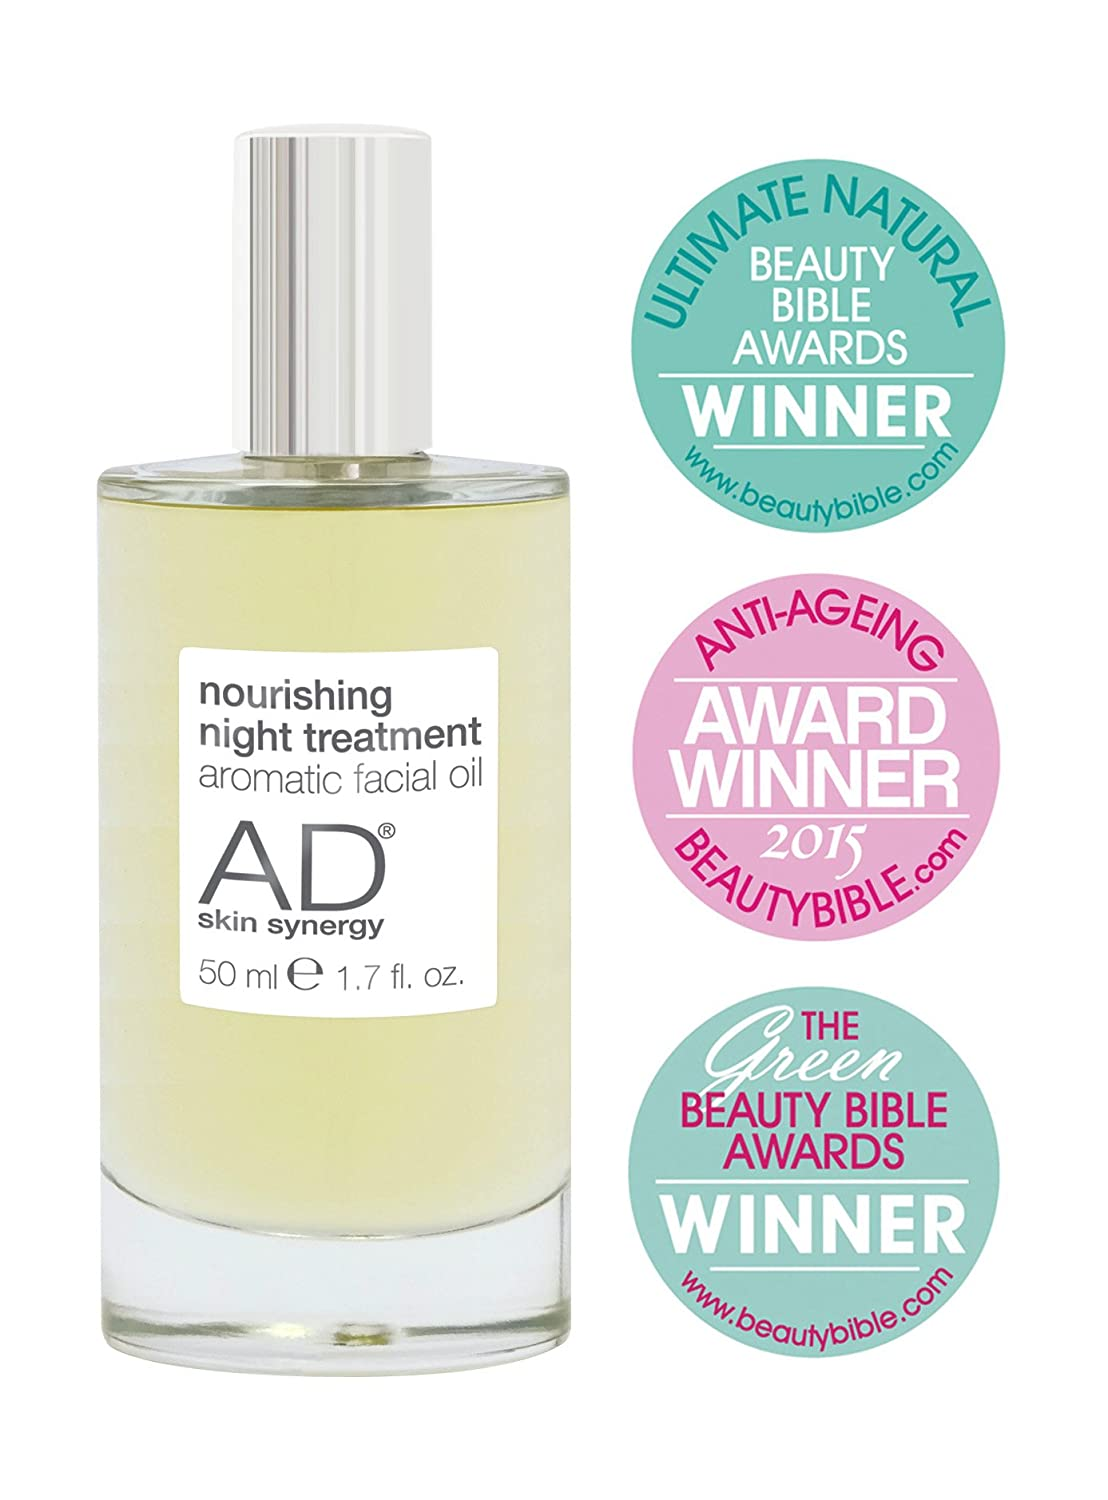 AD skin synergy - Face Oil - Award Winning Natural and Organic Nourishing Night Treatment Facial Oil - 50ml